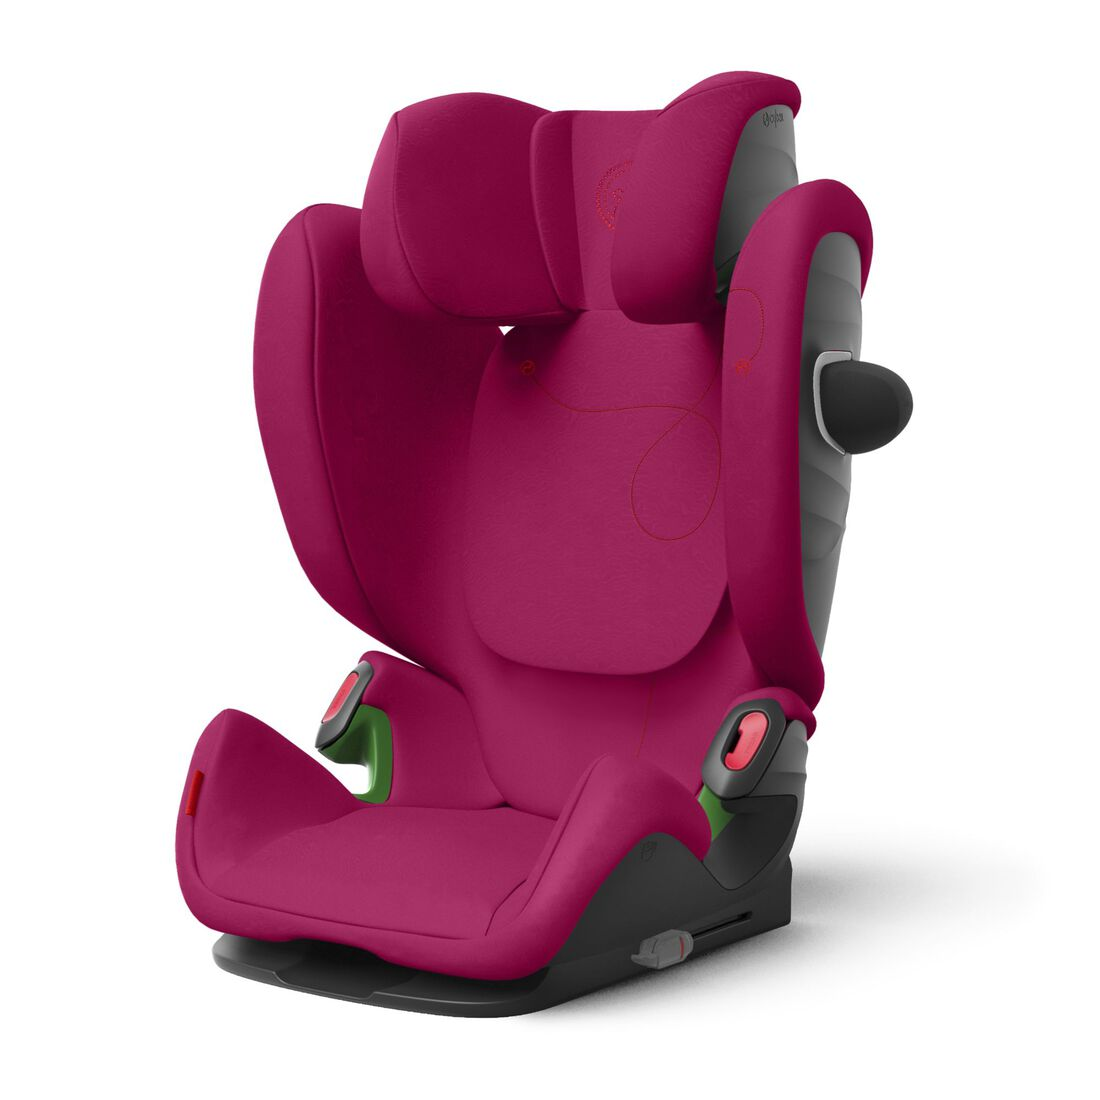 CYBEX Pallas G i-Size - Magnolia Pink in Magnolia Pink large image number 7